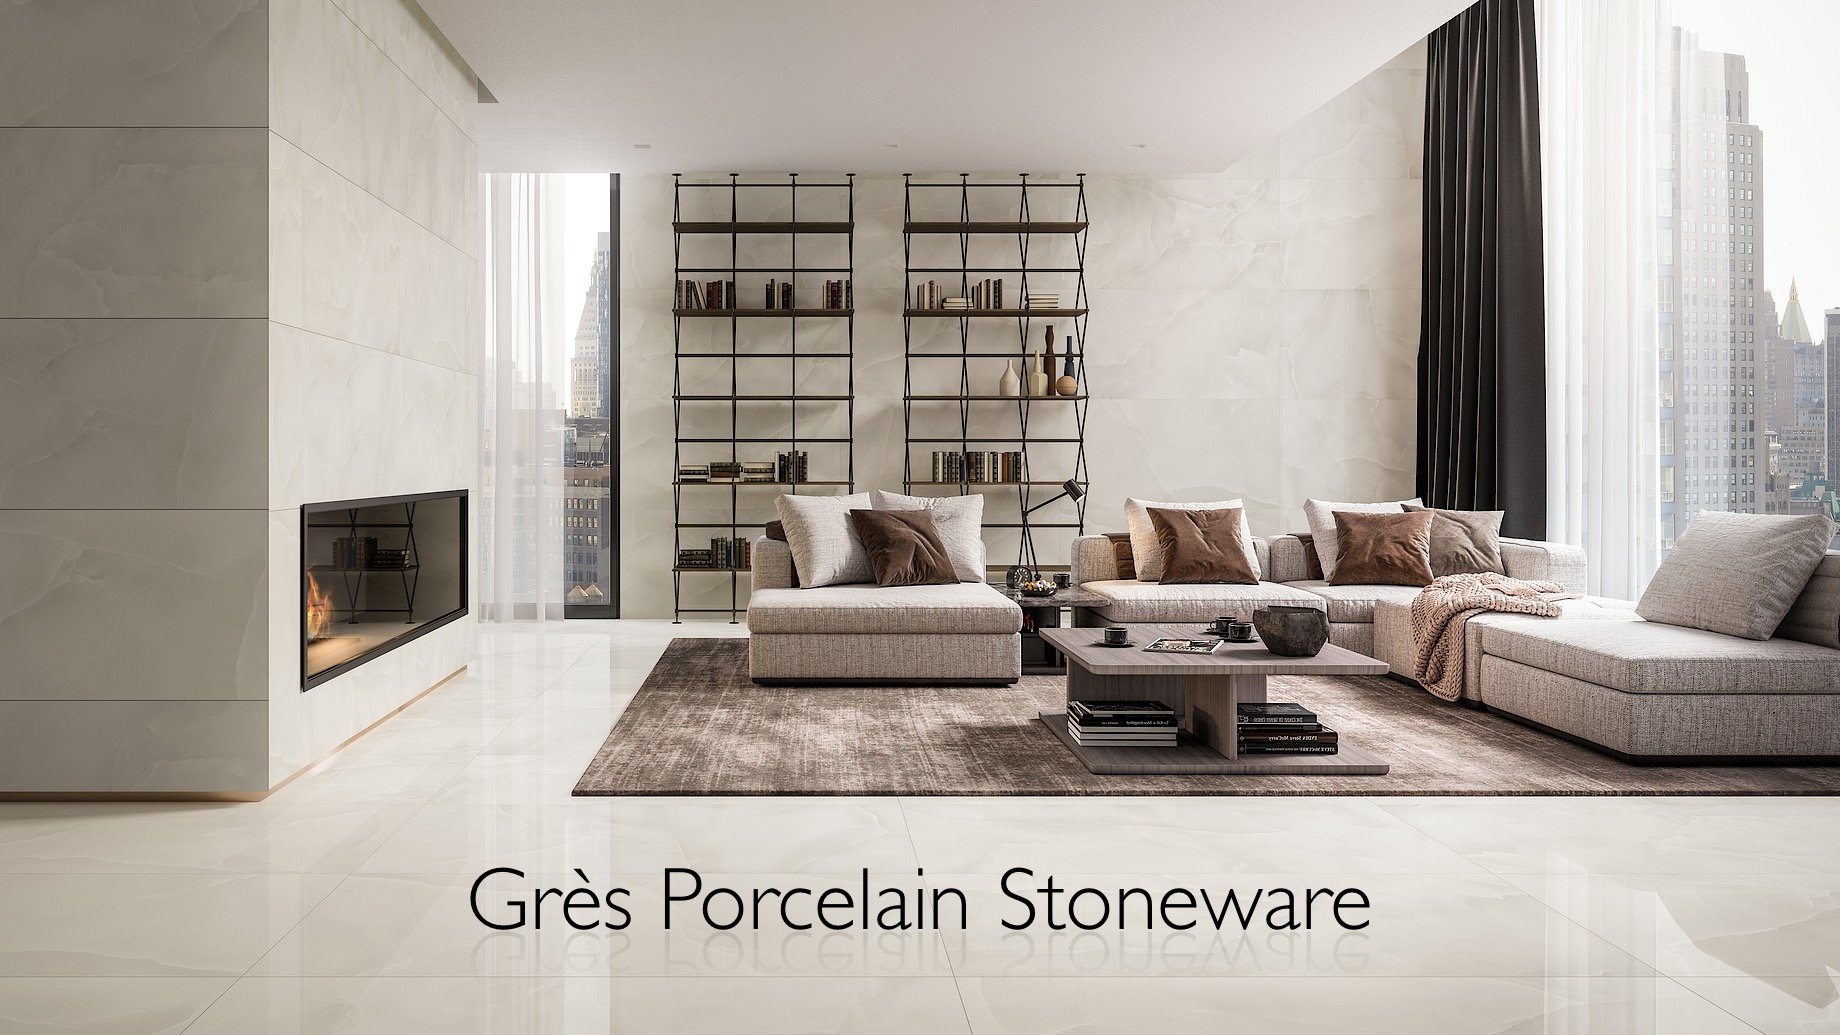 Grès Porcelain Stoneware - All You Need To Know